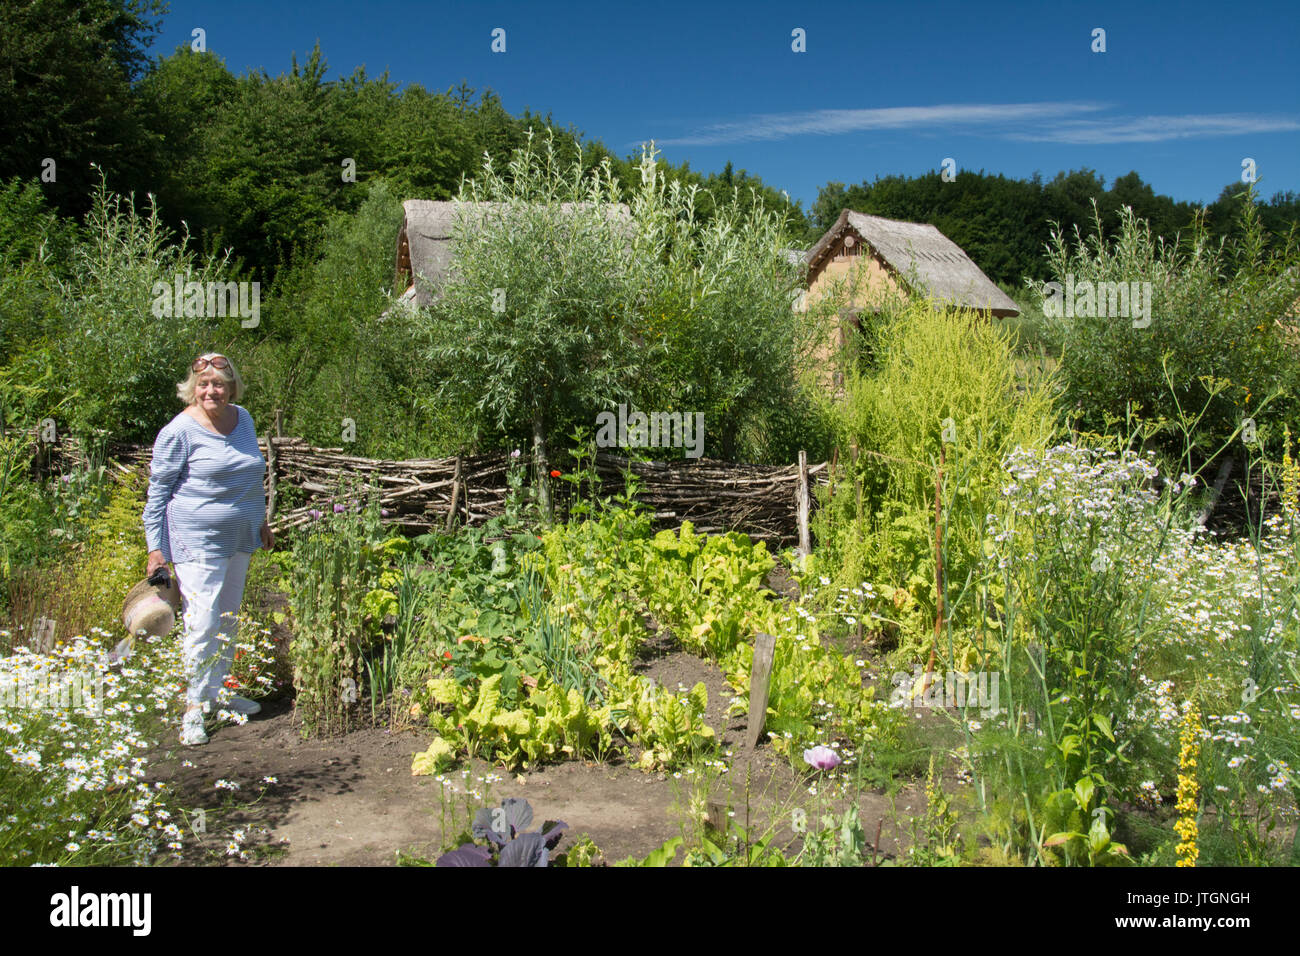 A visitor explores the vegetable garden at the Oldenburger Wallmuseum in Oldenburg-in-Holstein, Germany, which recreates a medieval Slavonic community - Stock Image